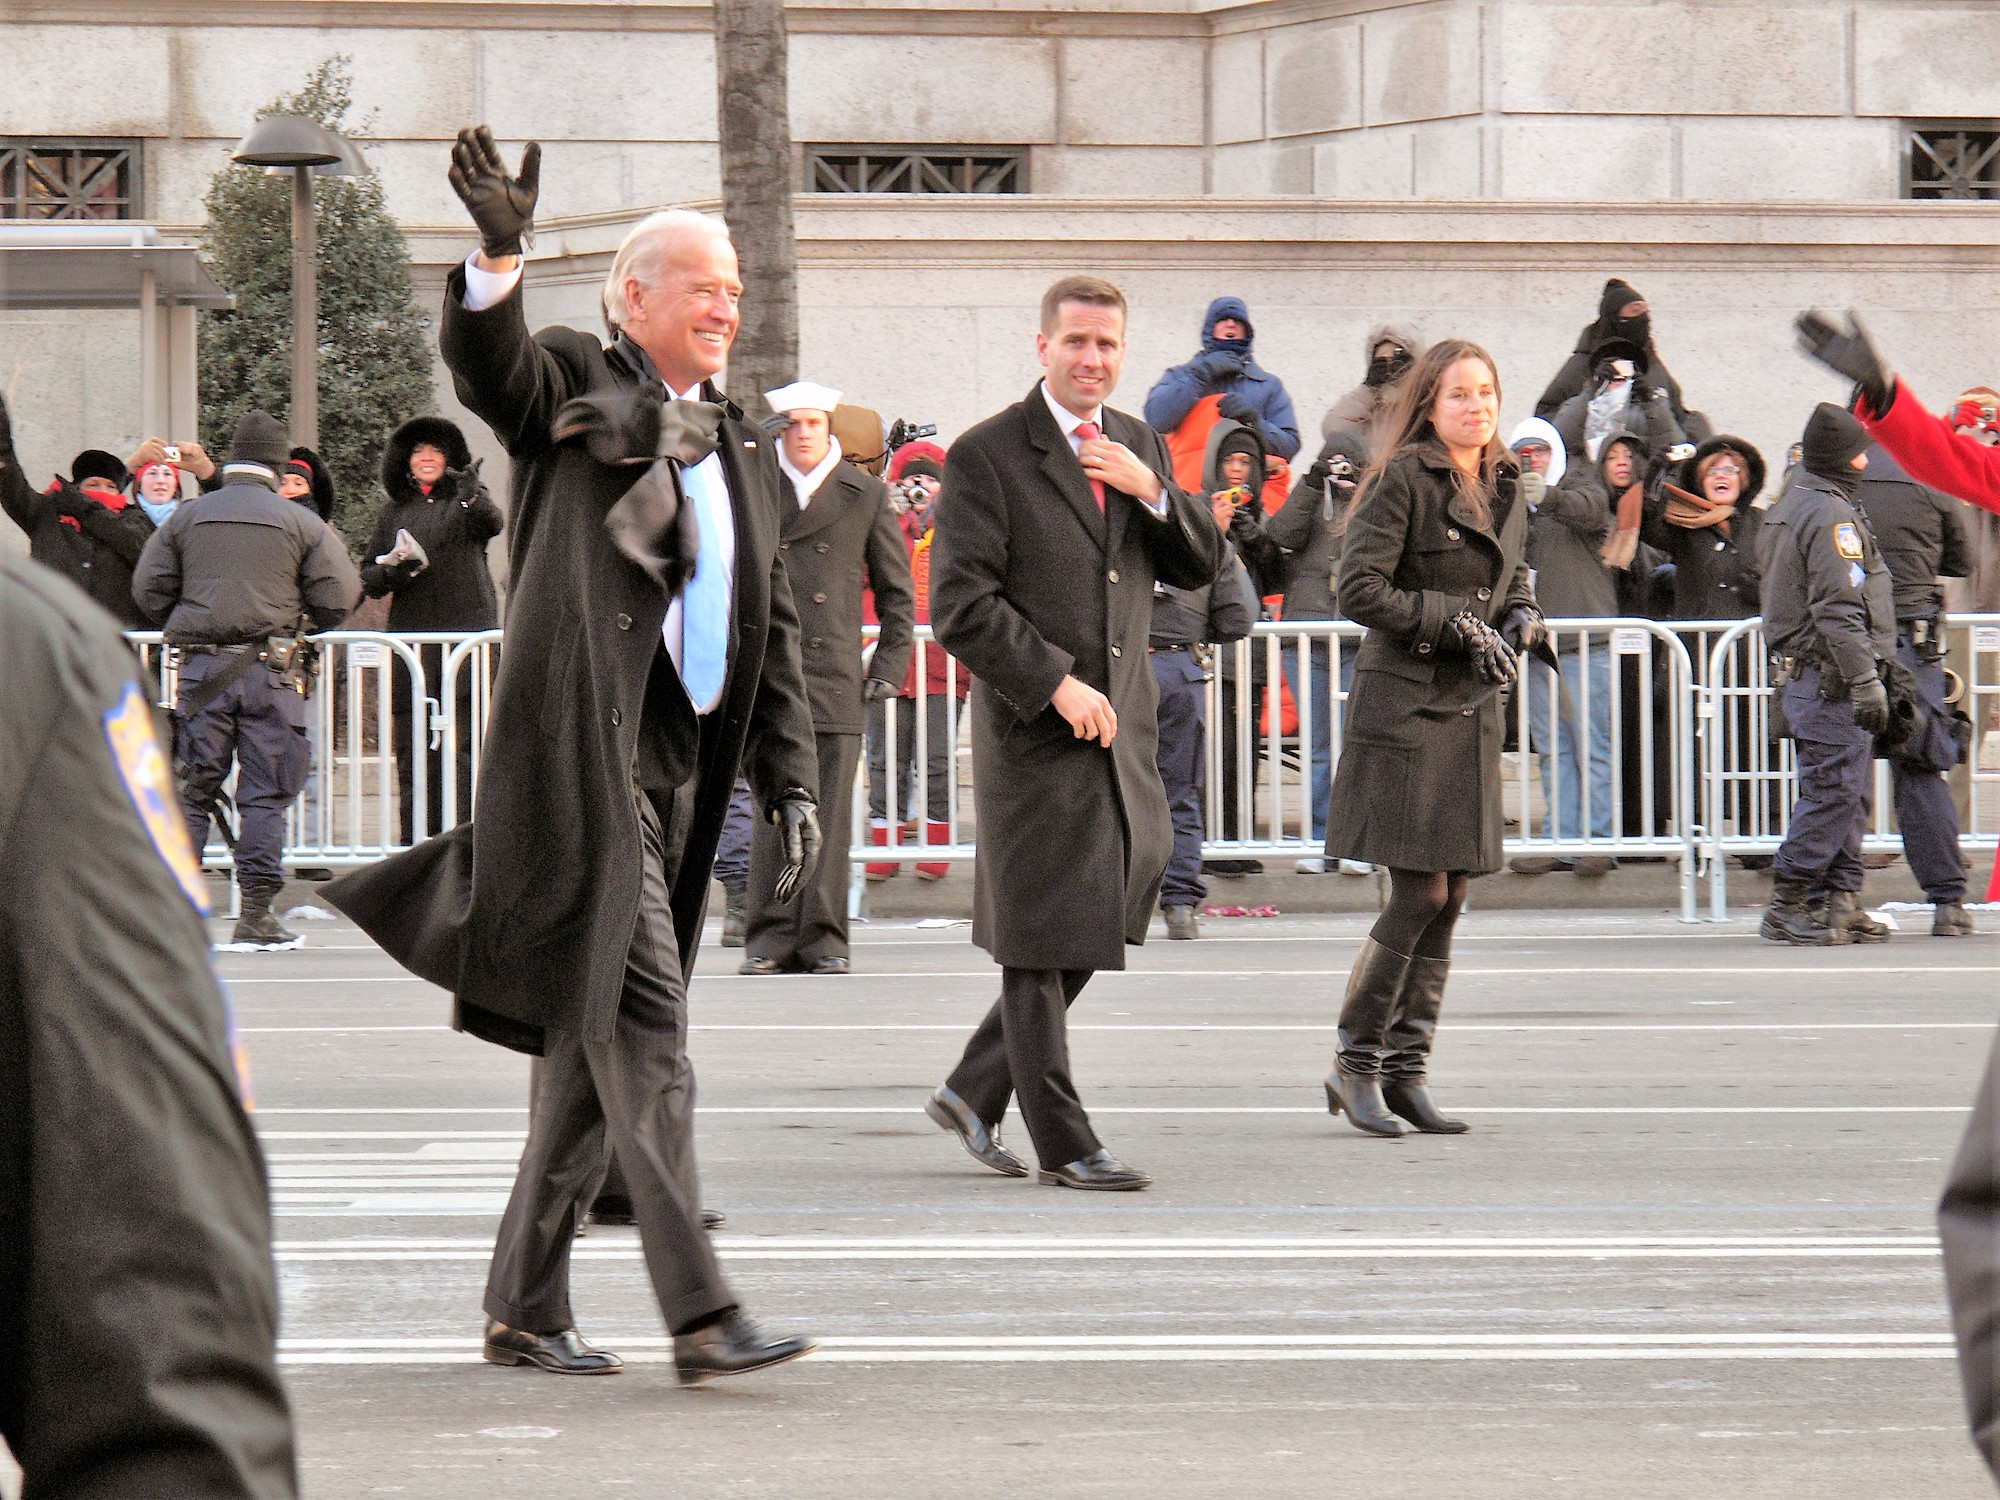 Biden walks in a parade with his youngest son and daughter